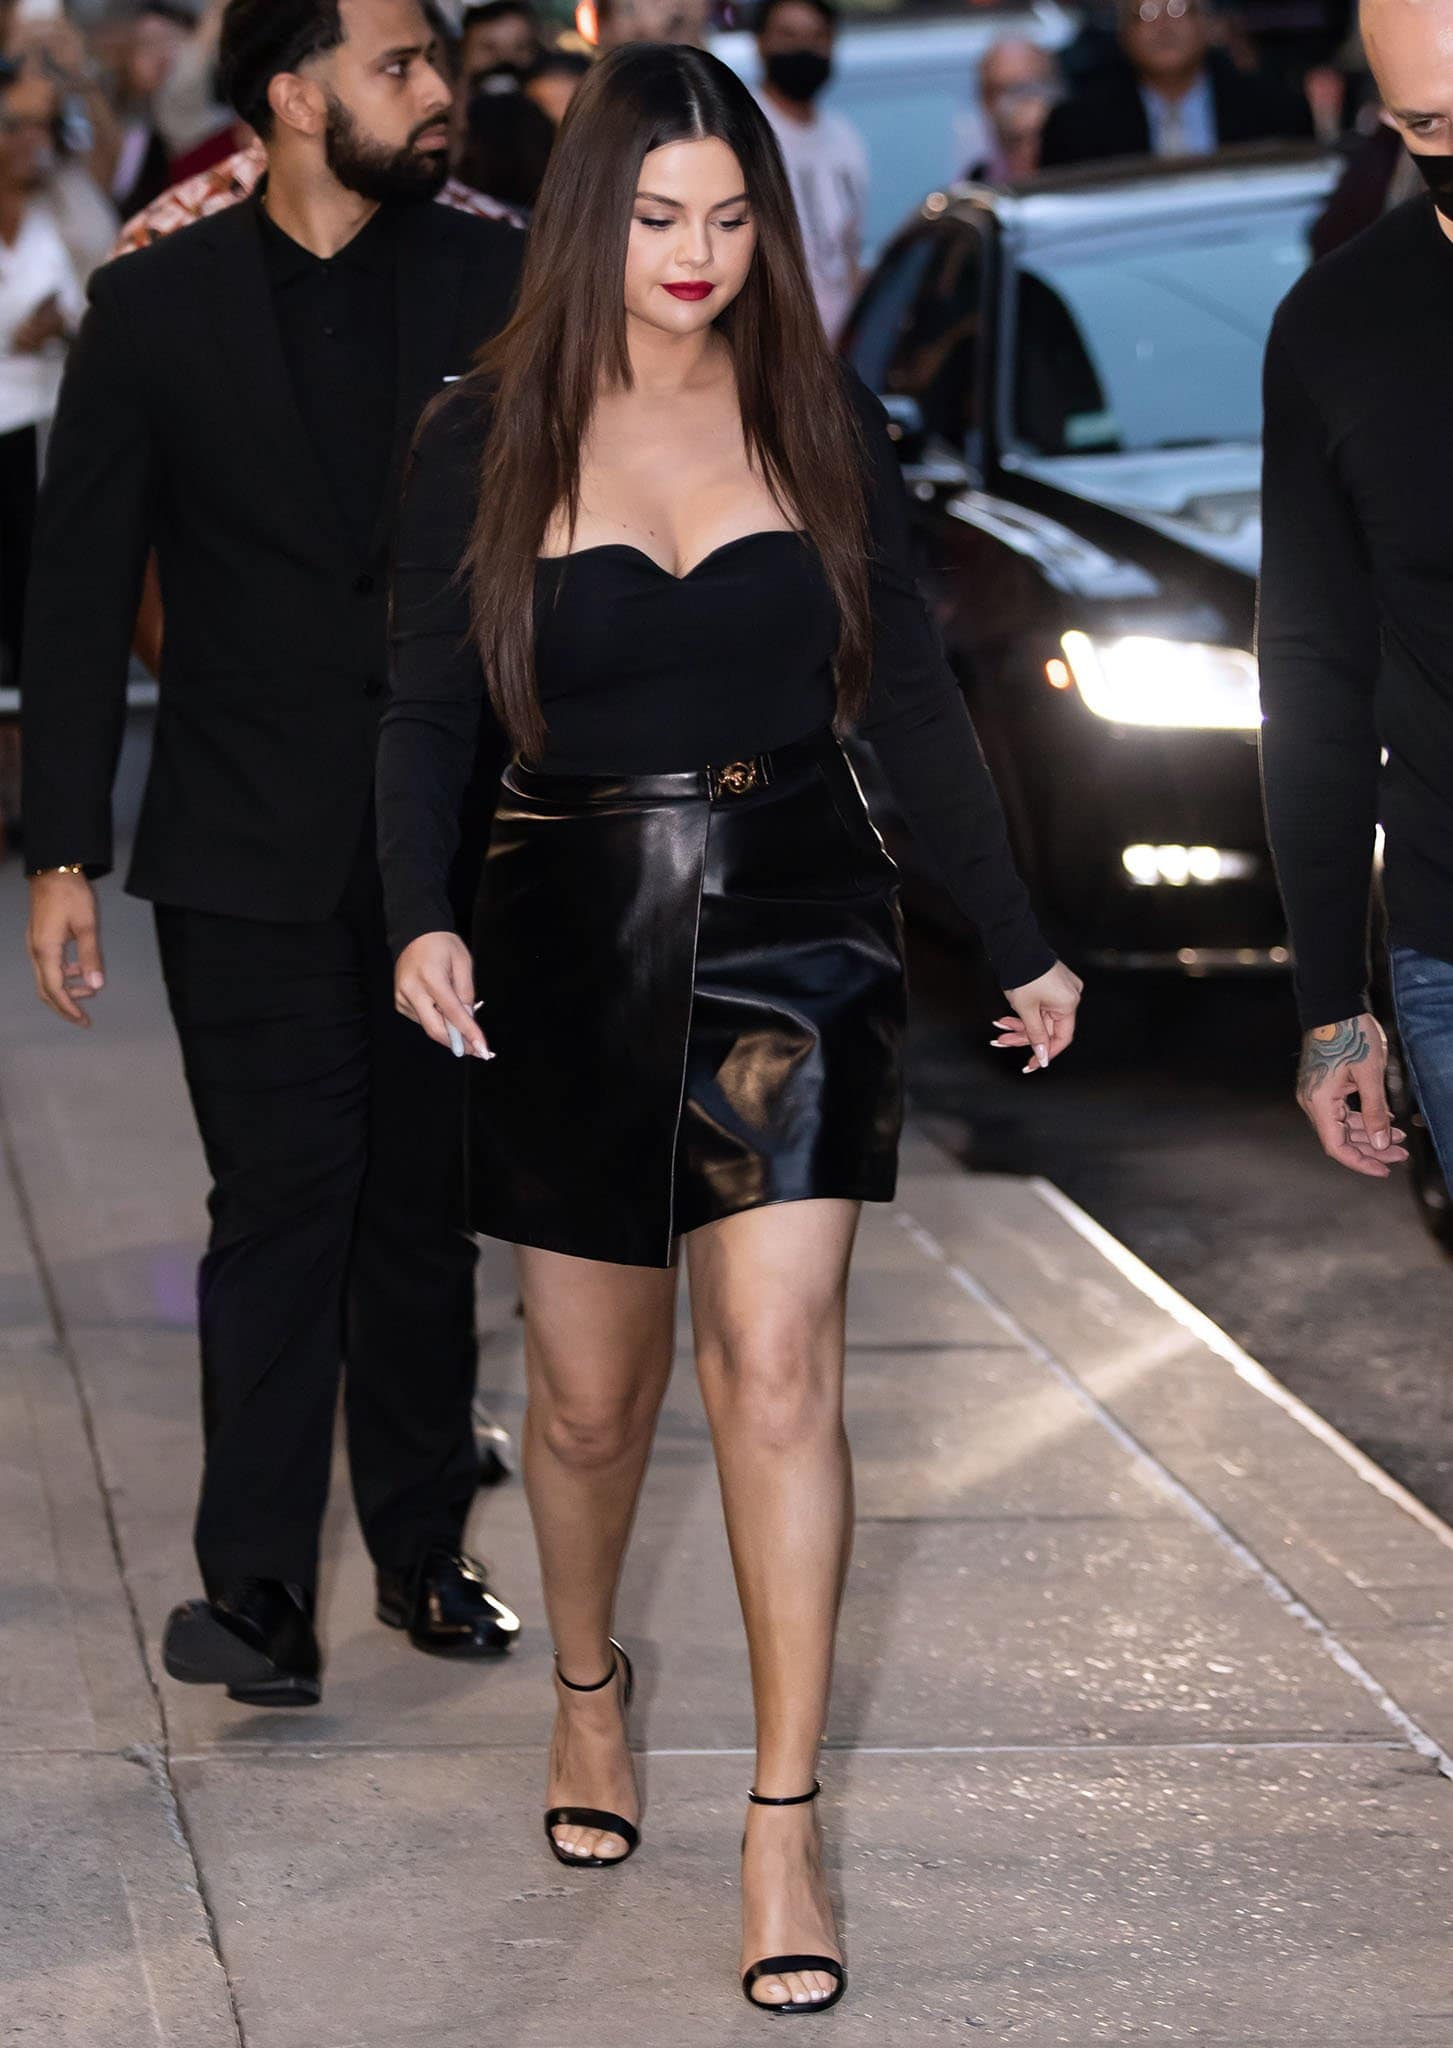 Selena Gomez parades her legs in Versace leather mini skirt and cleavage-baring jersey bodysuit